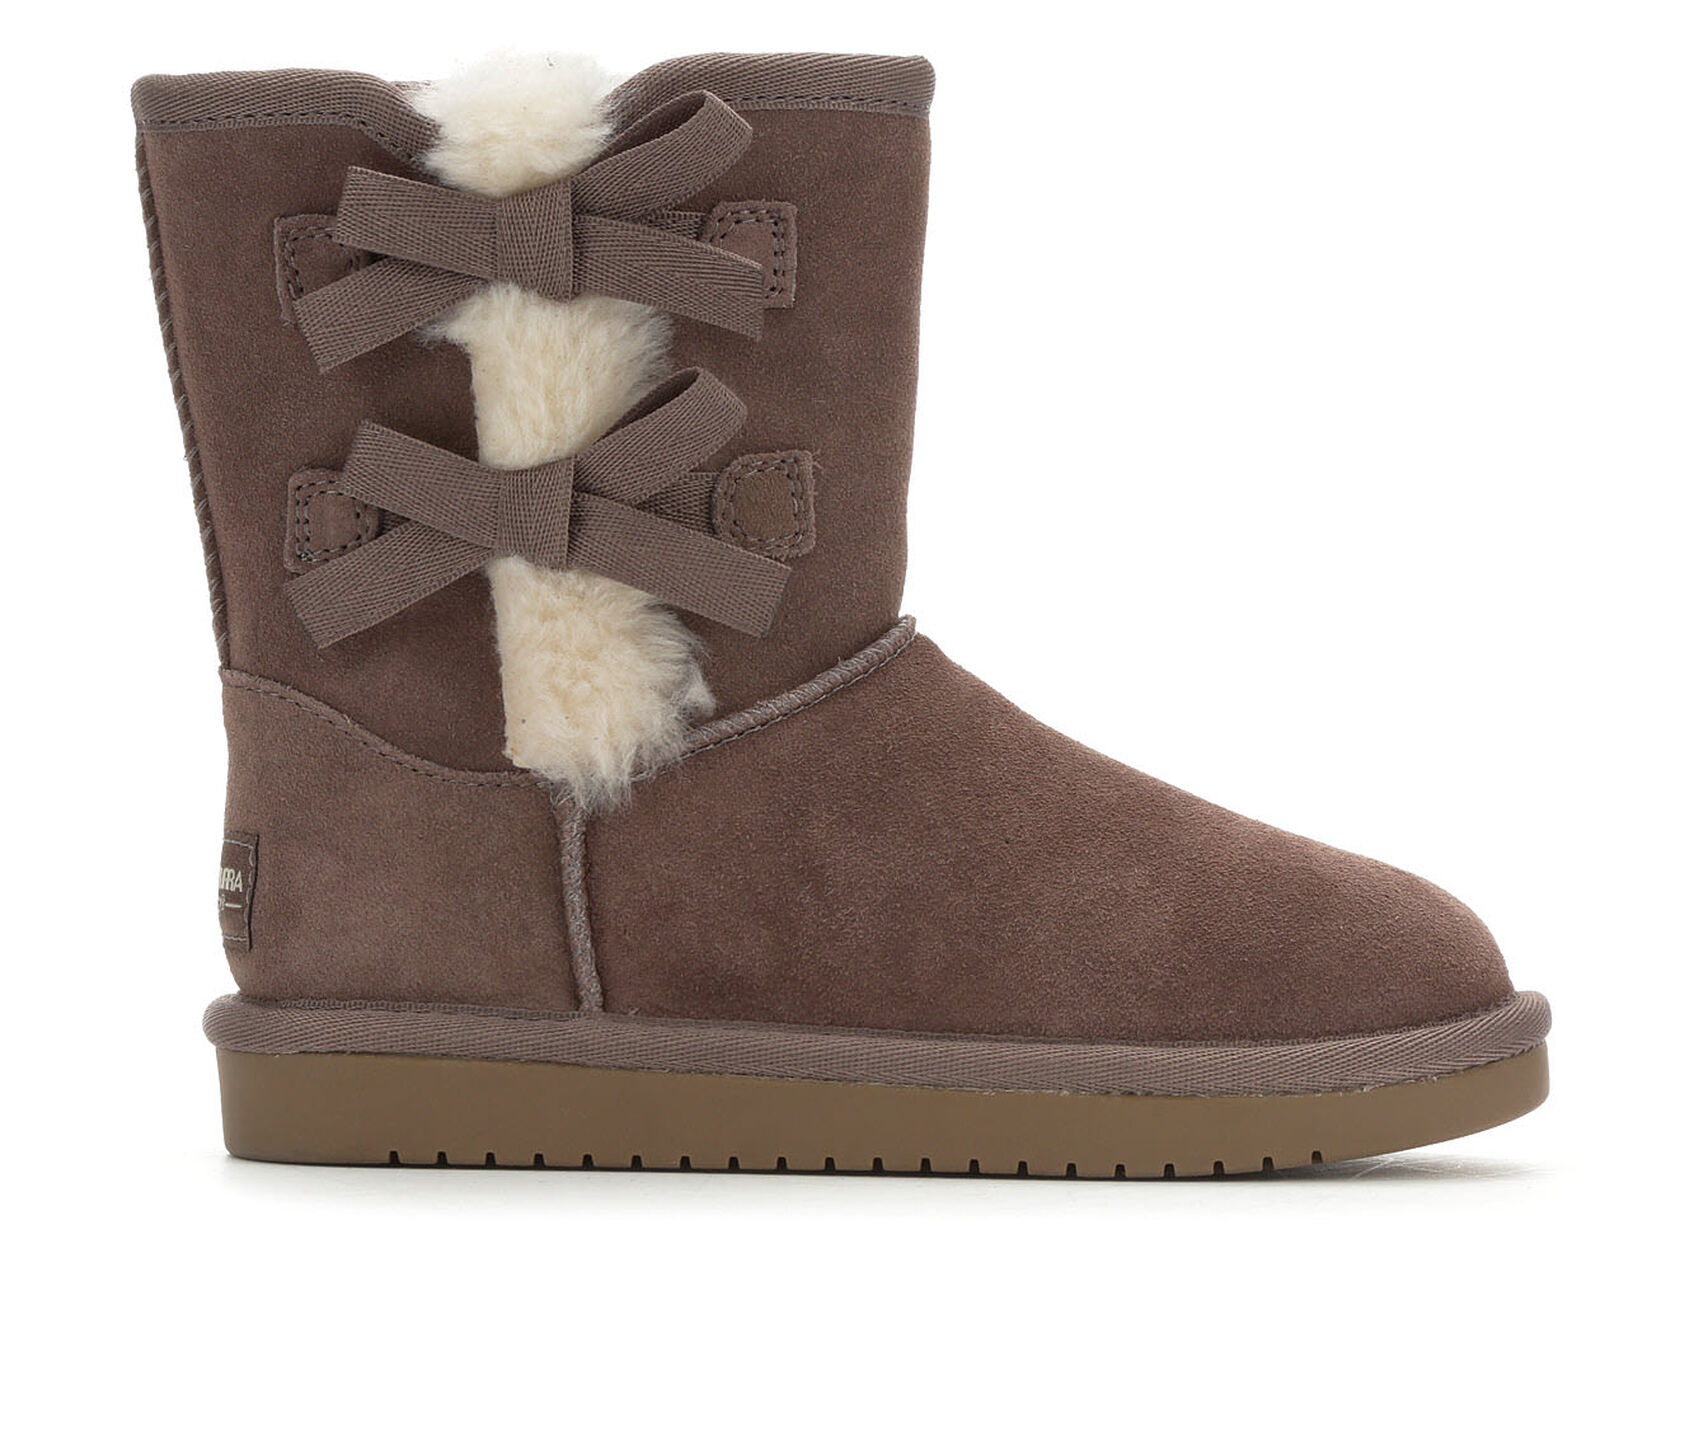 ee40d8bec46 Girls' Koolaburra by UGG Little Kid & Big Kid Victoria Short Boots